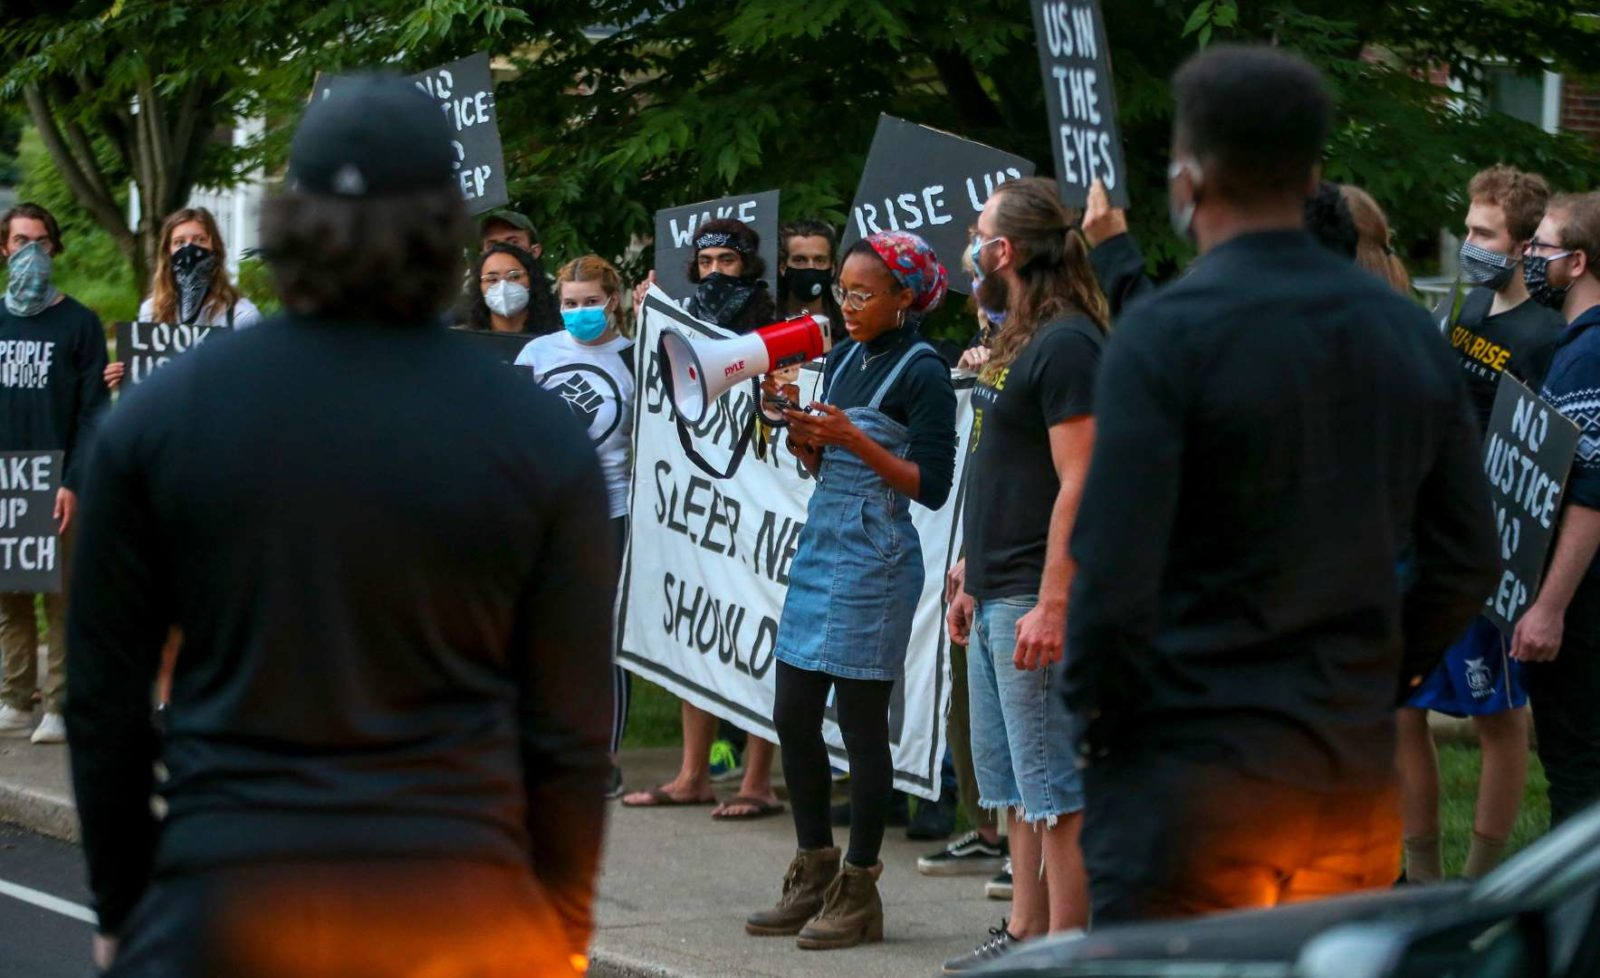 A Sunrise activist speaks into a megaphone while fellow protesters stand in support.